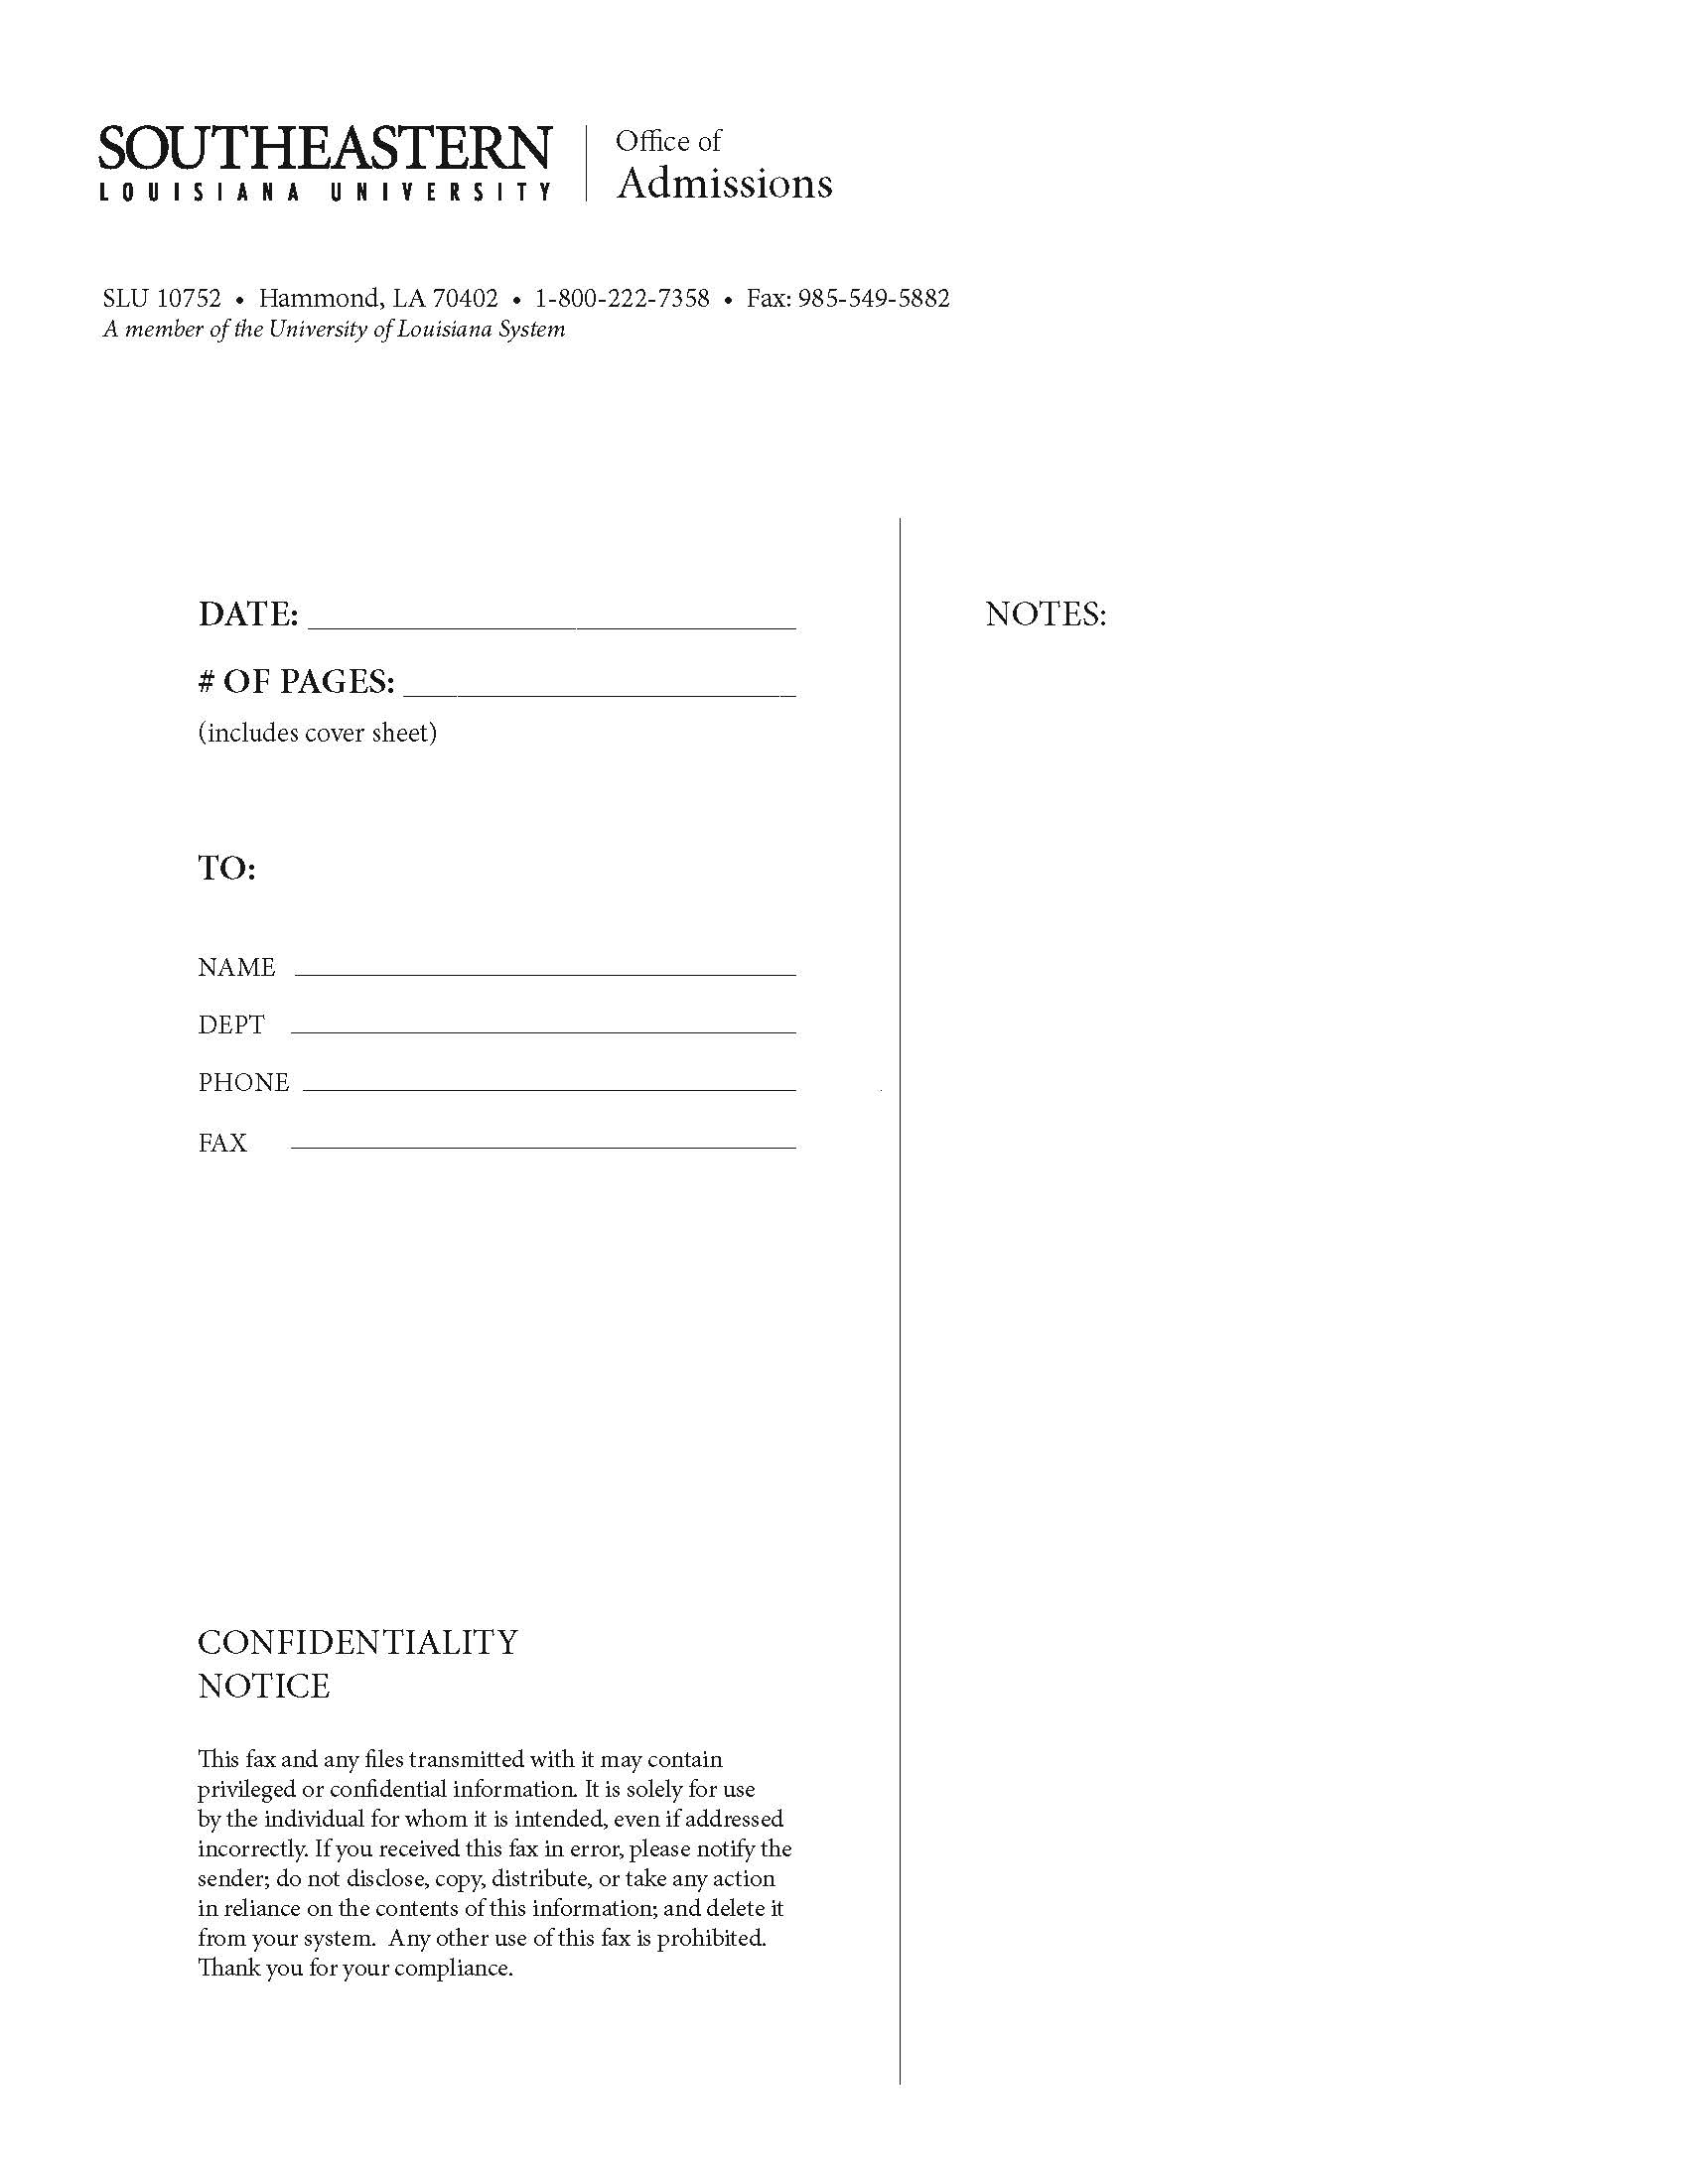 Fax Sheet Example